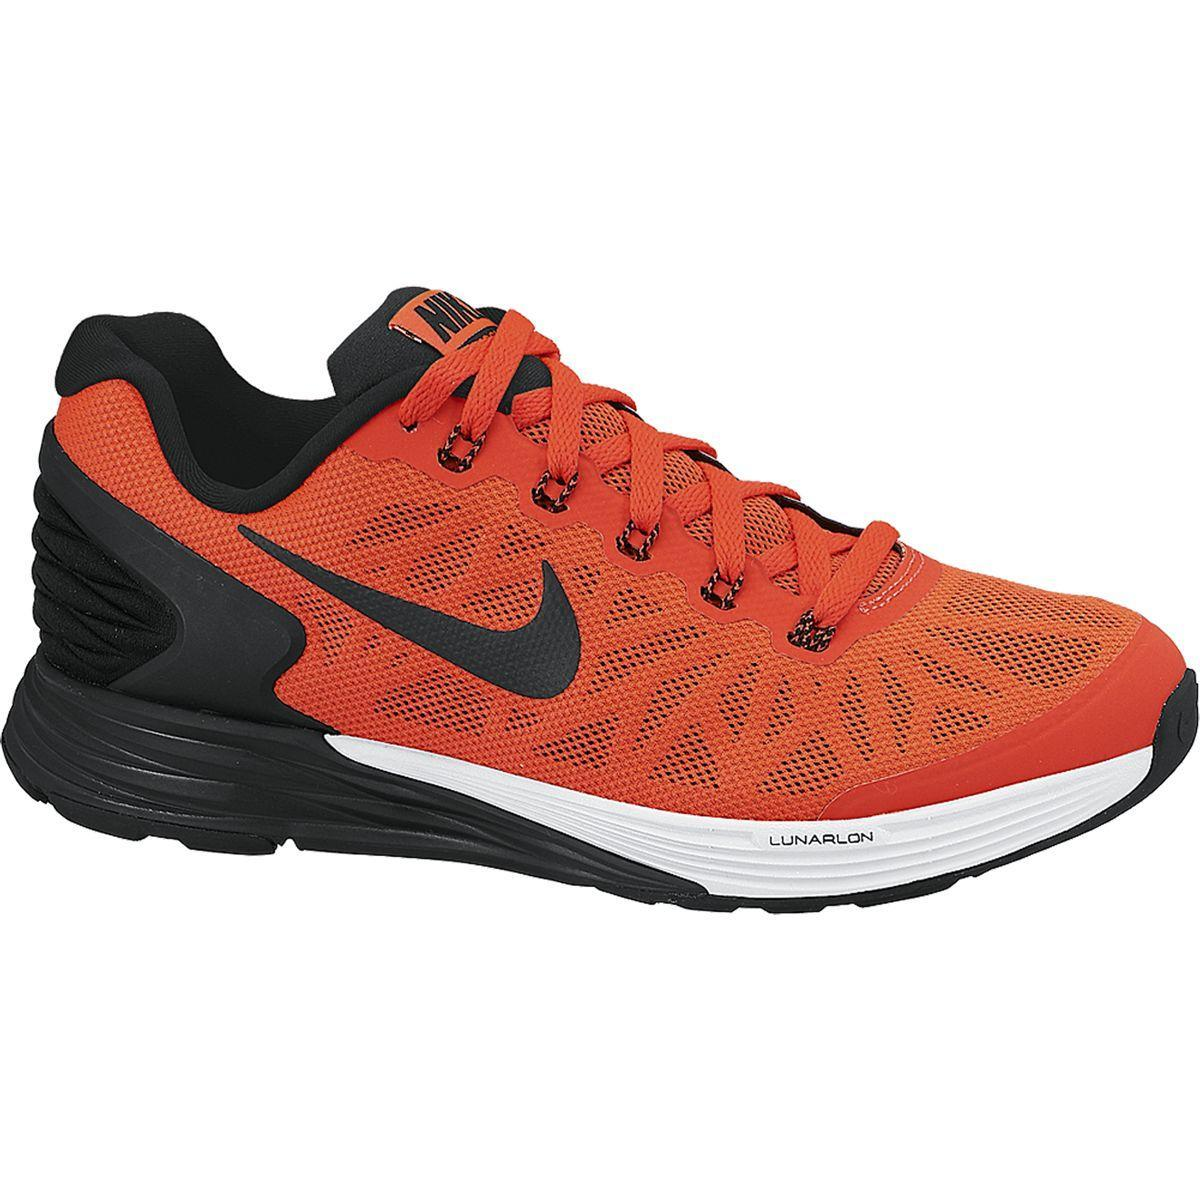 more photos 6d7e0 6b47d Nike Boys LunarGlide 6 Running Shoes - Bright Crimson Black - Tennisnuts.com